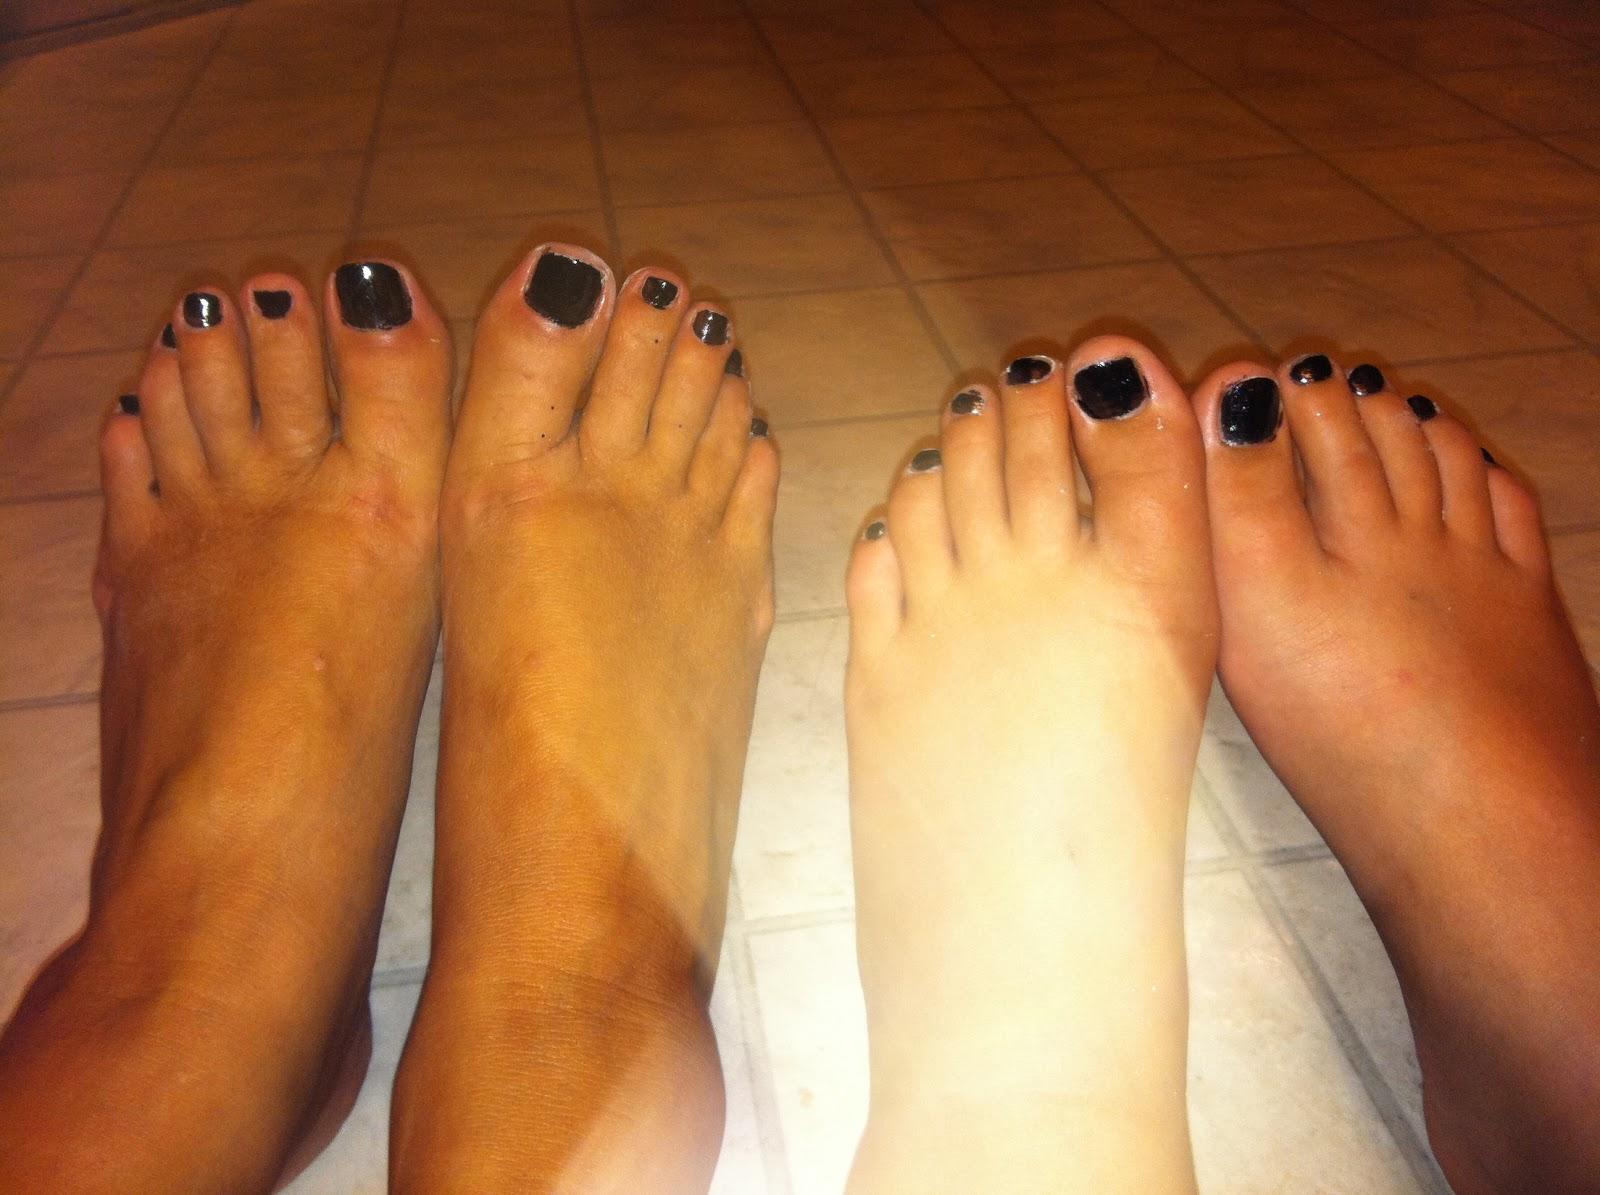 The Black Toenail Polish